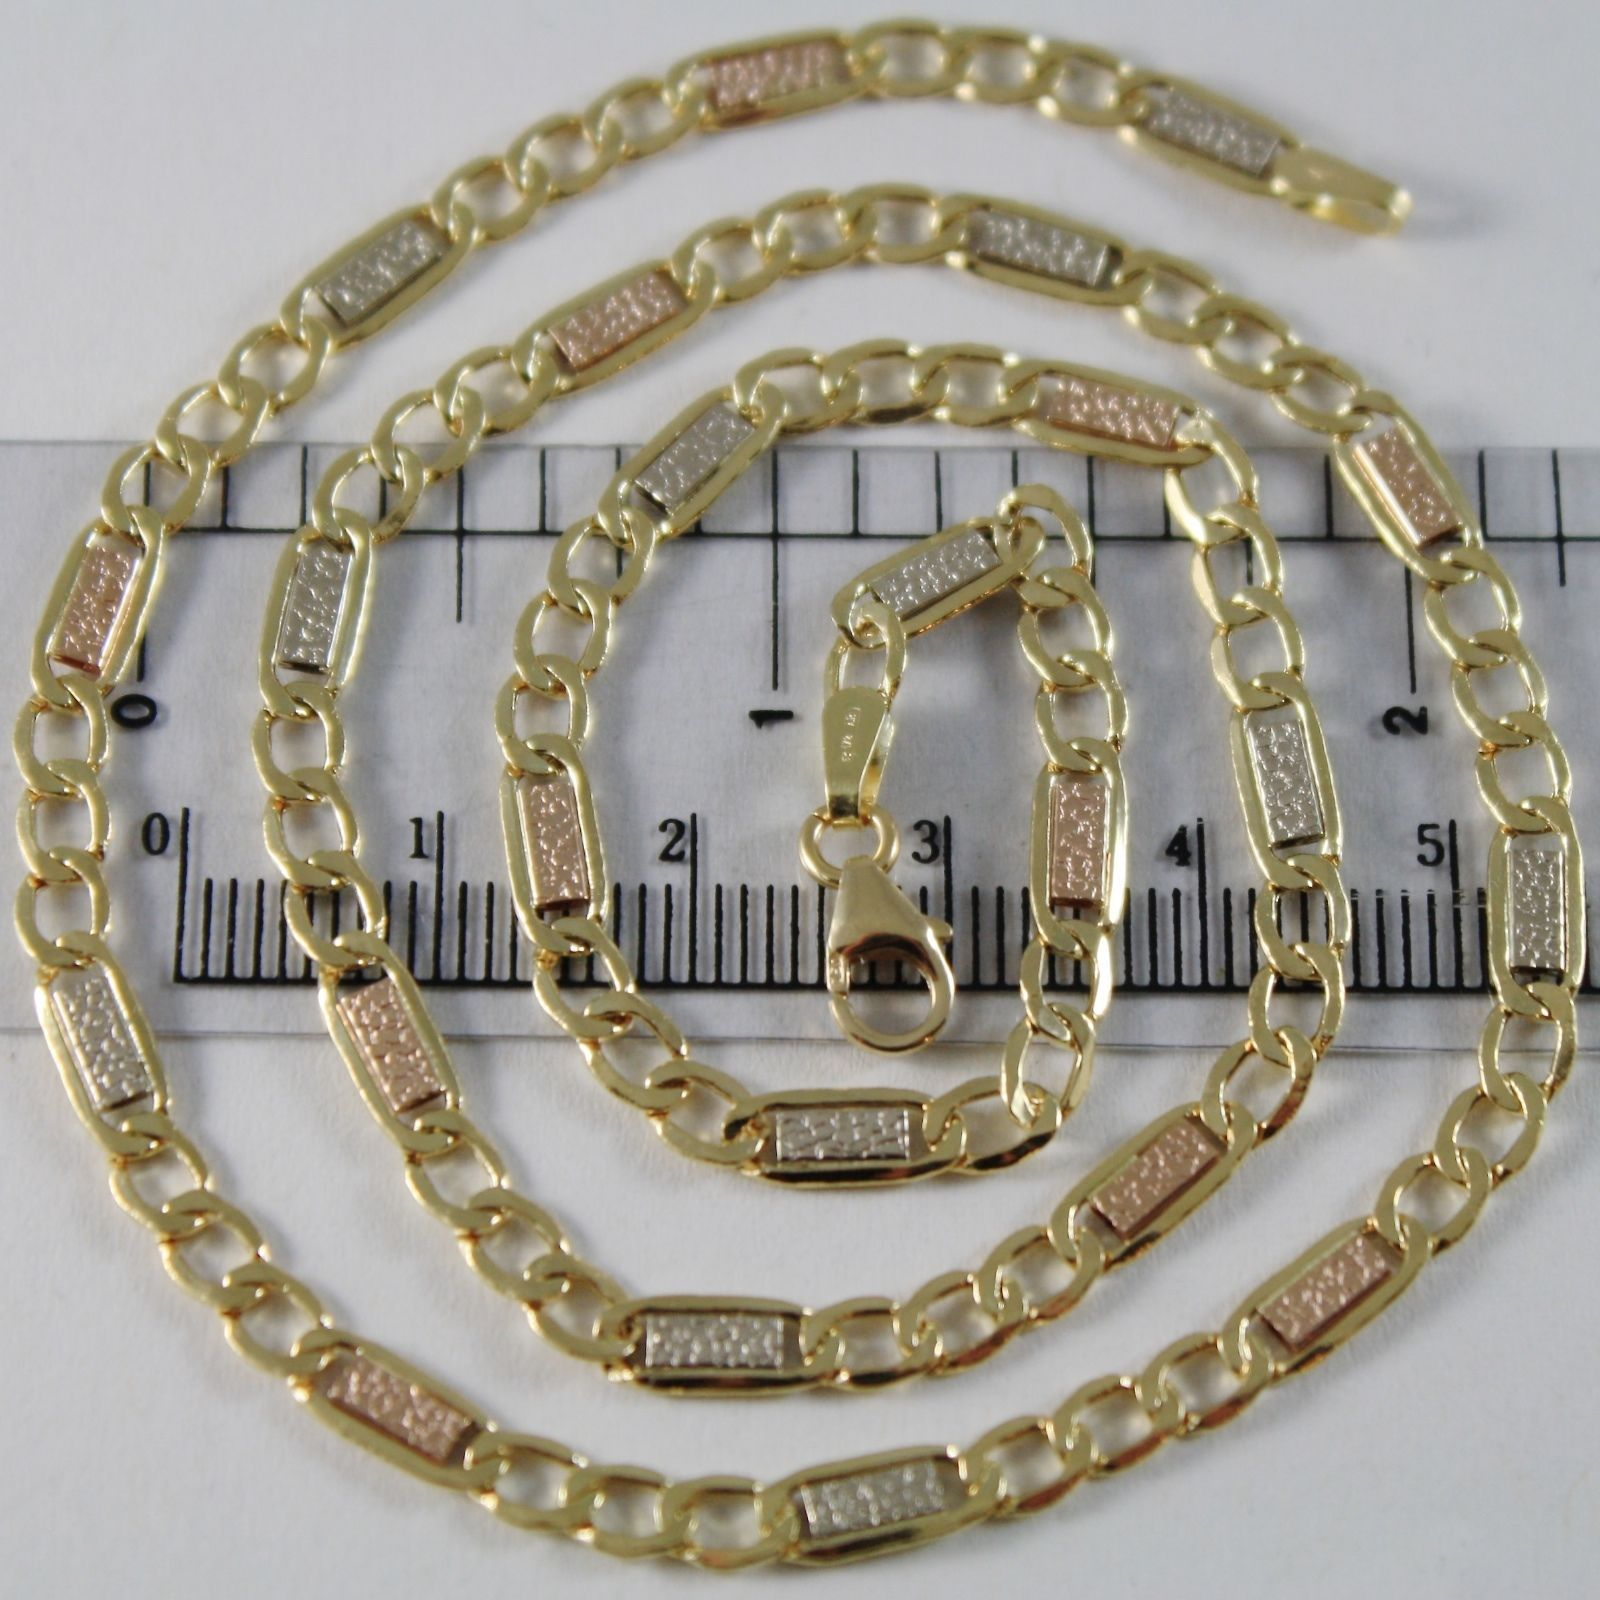 18K WHITE YELLOW ROSE GOLD CHAIN GOURMETTE BUBBLES 4 MM MESH 23.60 MADE IN ITALY